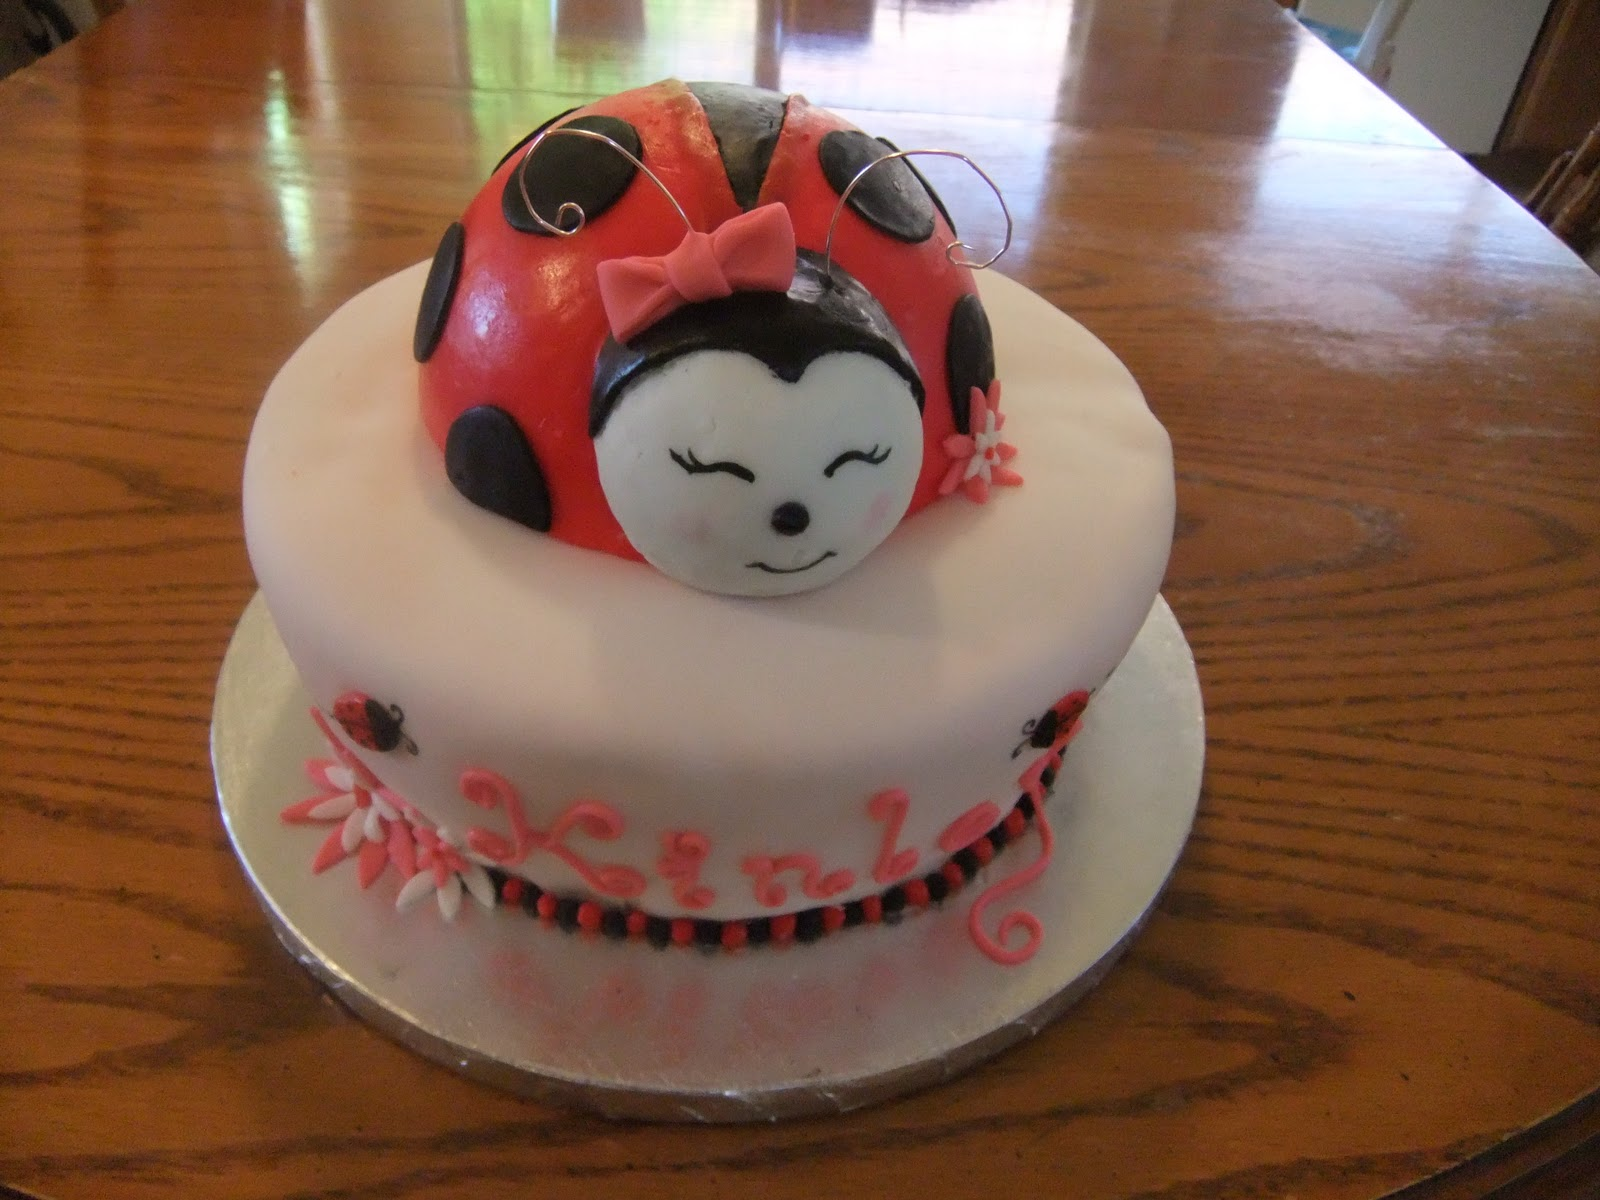 Delightful For The Name I Used My Clay Extruder And I Put Ladybugs And A Few Flowers  Around The Cake. The Mother Of Honor Loved The Cake So Iu0027m Glad How The Cake  ...